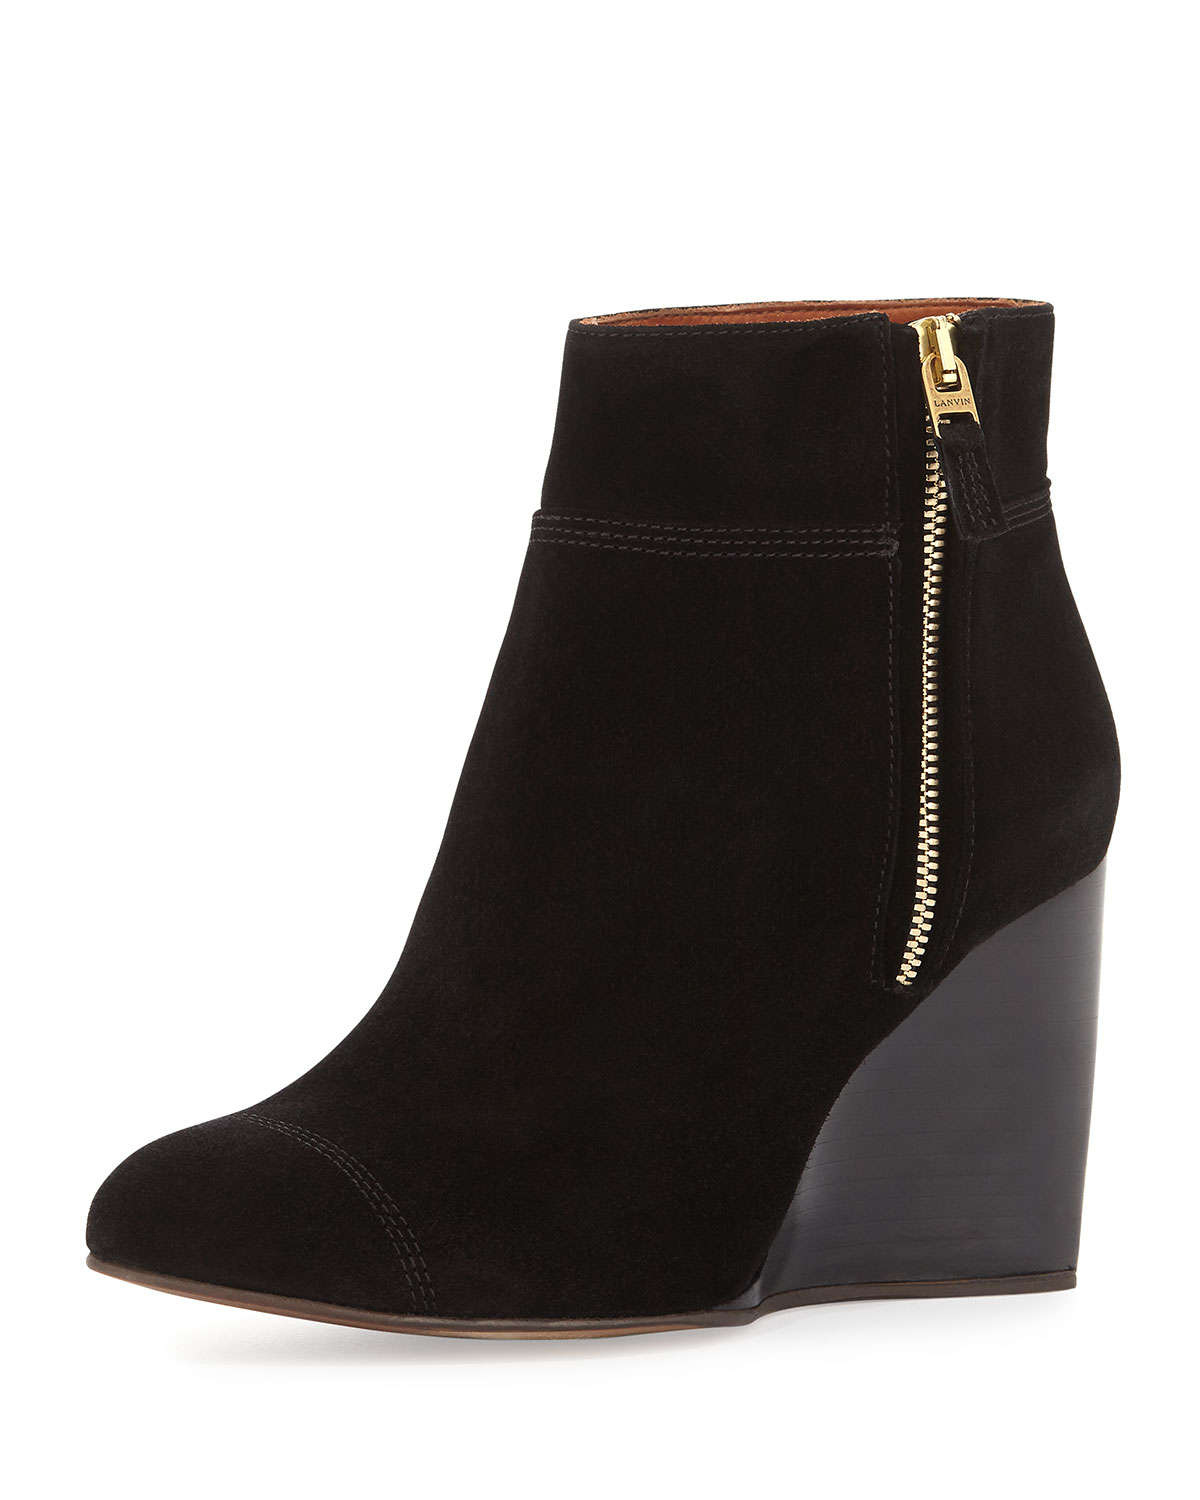 Lanvin Suede Wedge Ankle Boot in Black | Lyst